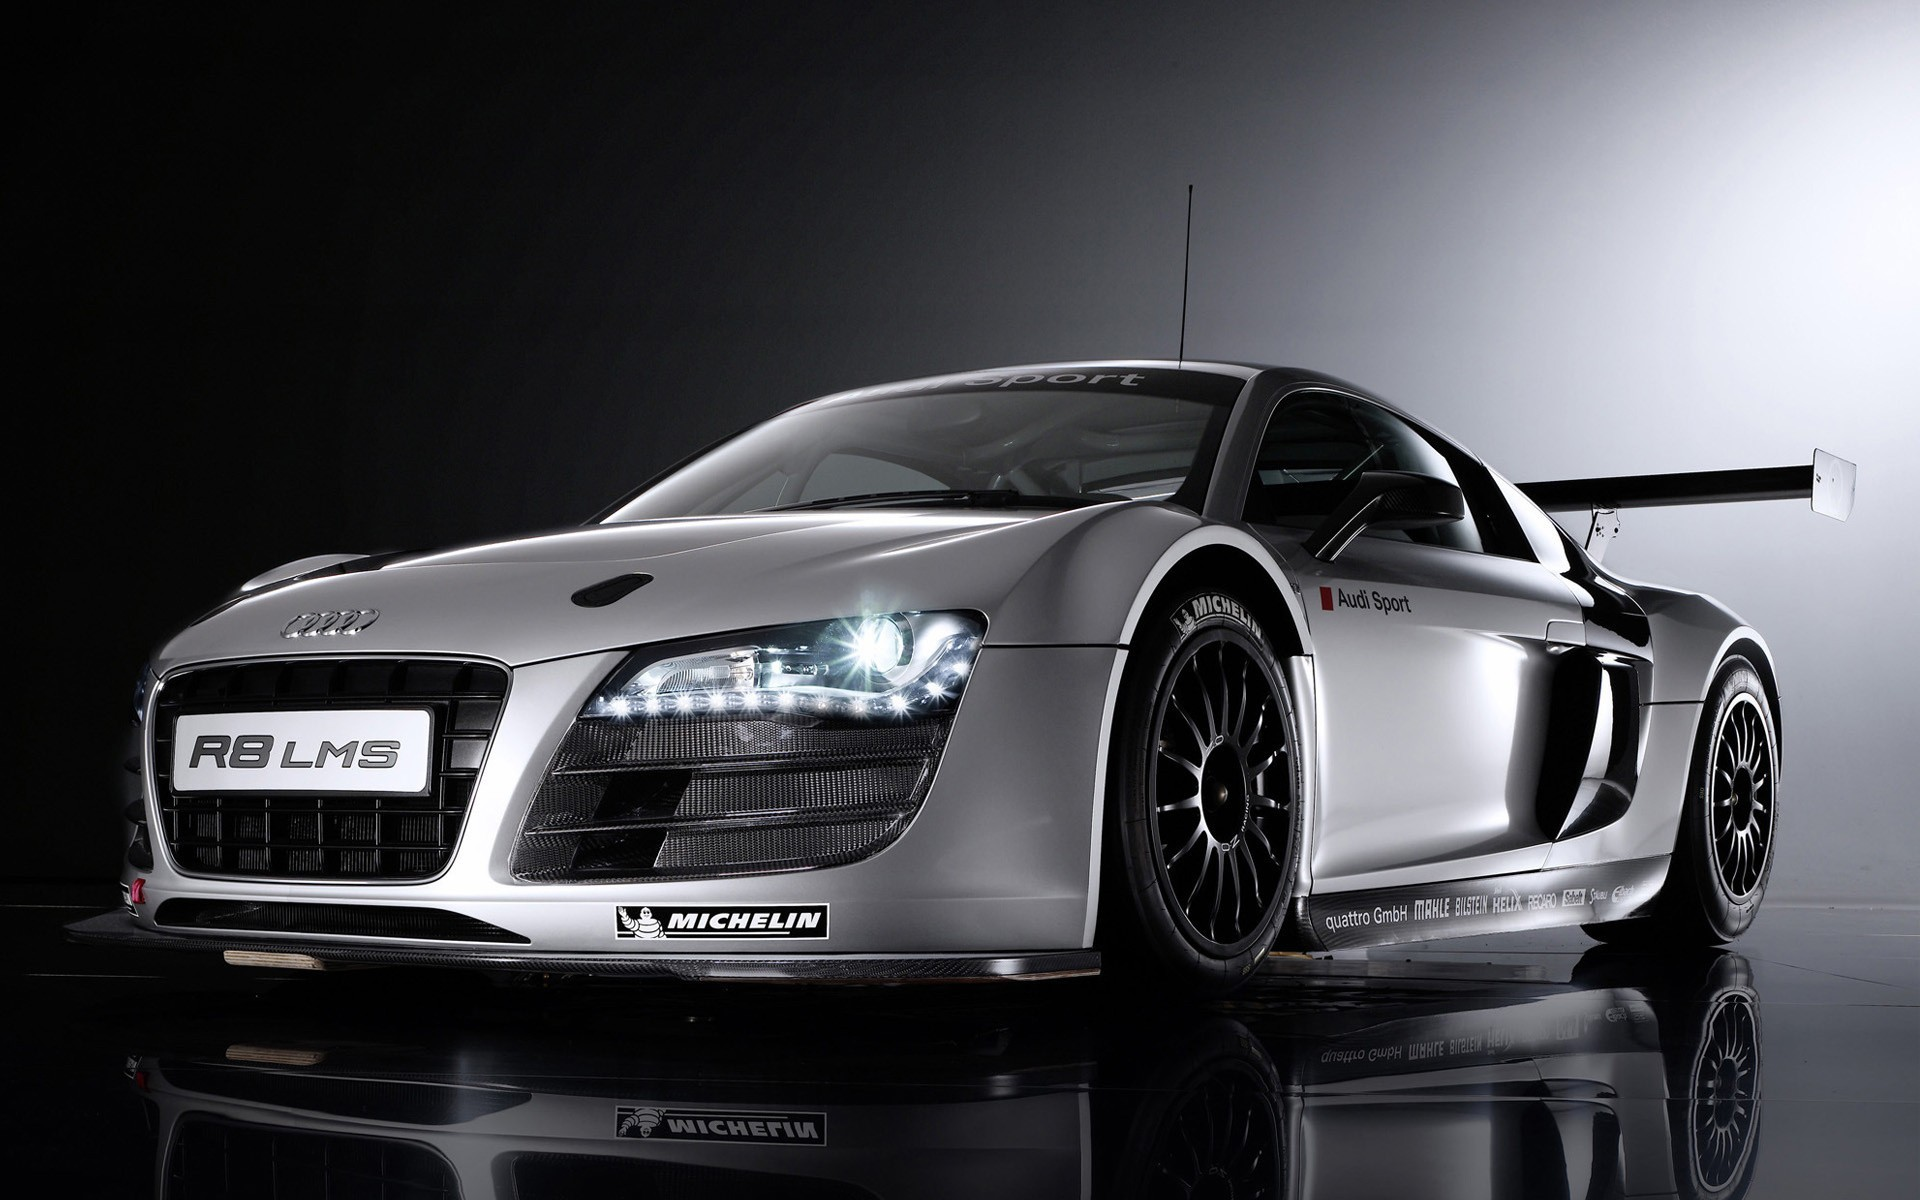 cars Le Mans audi HD Wallpaper